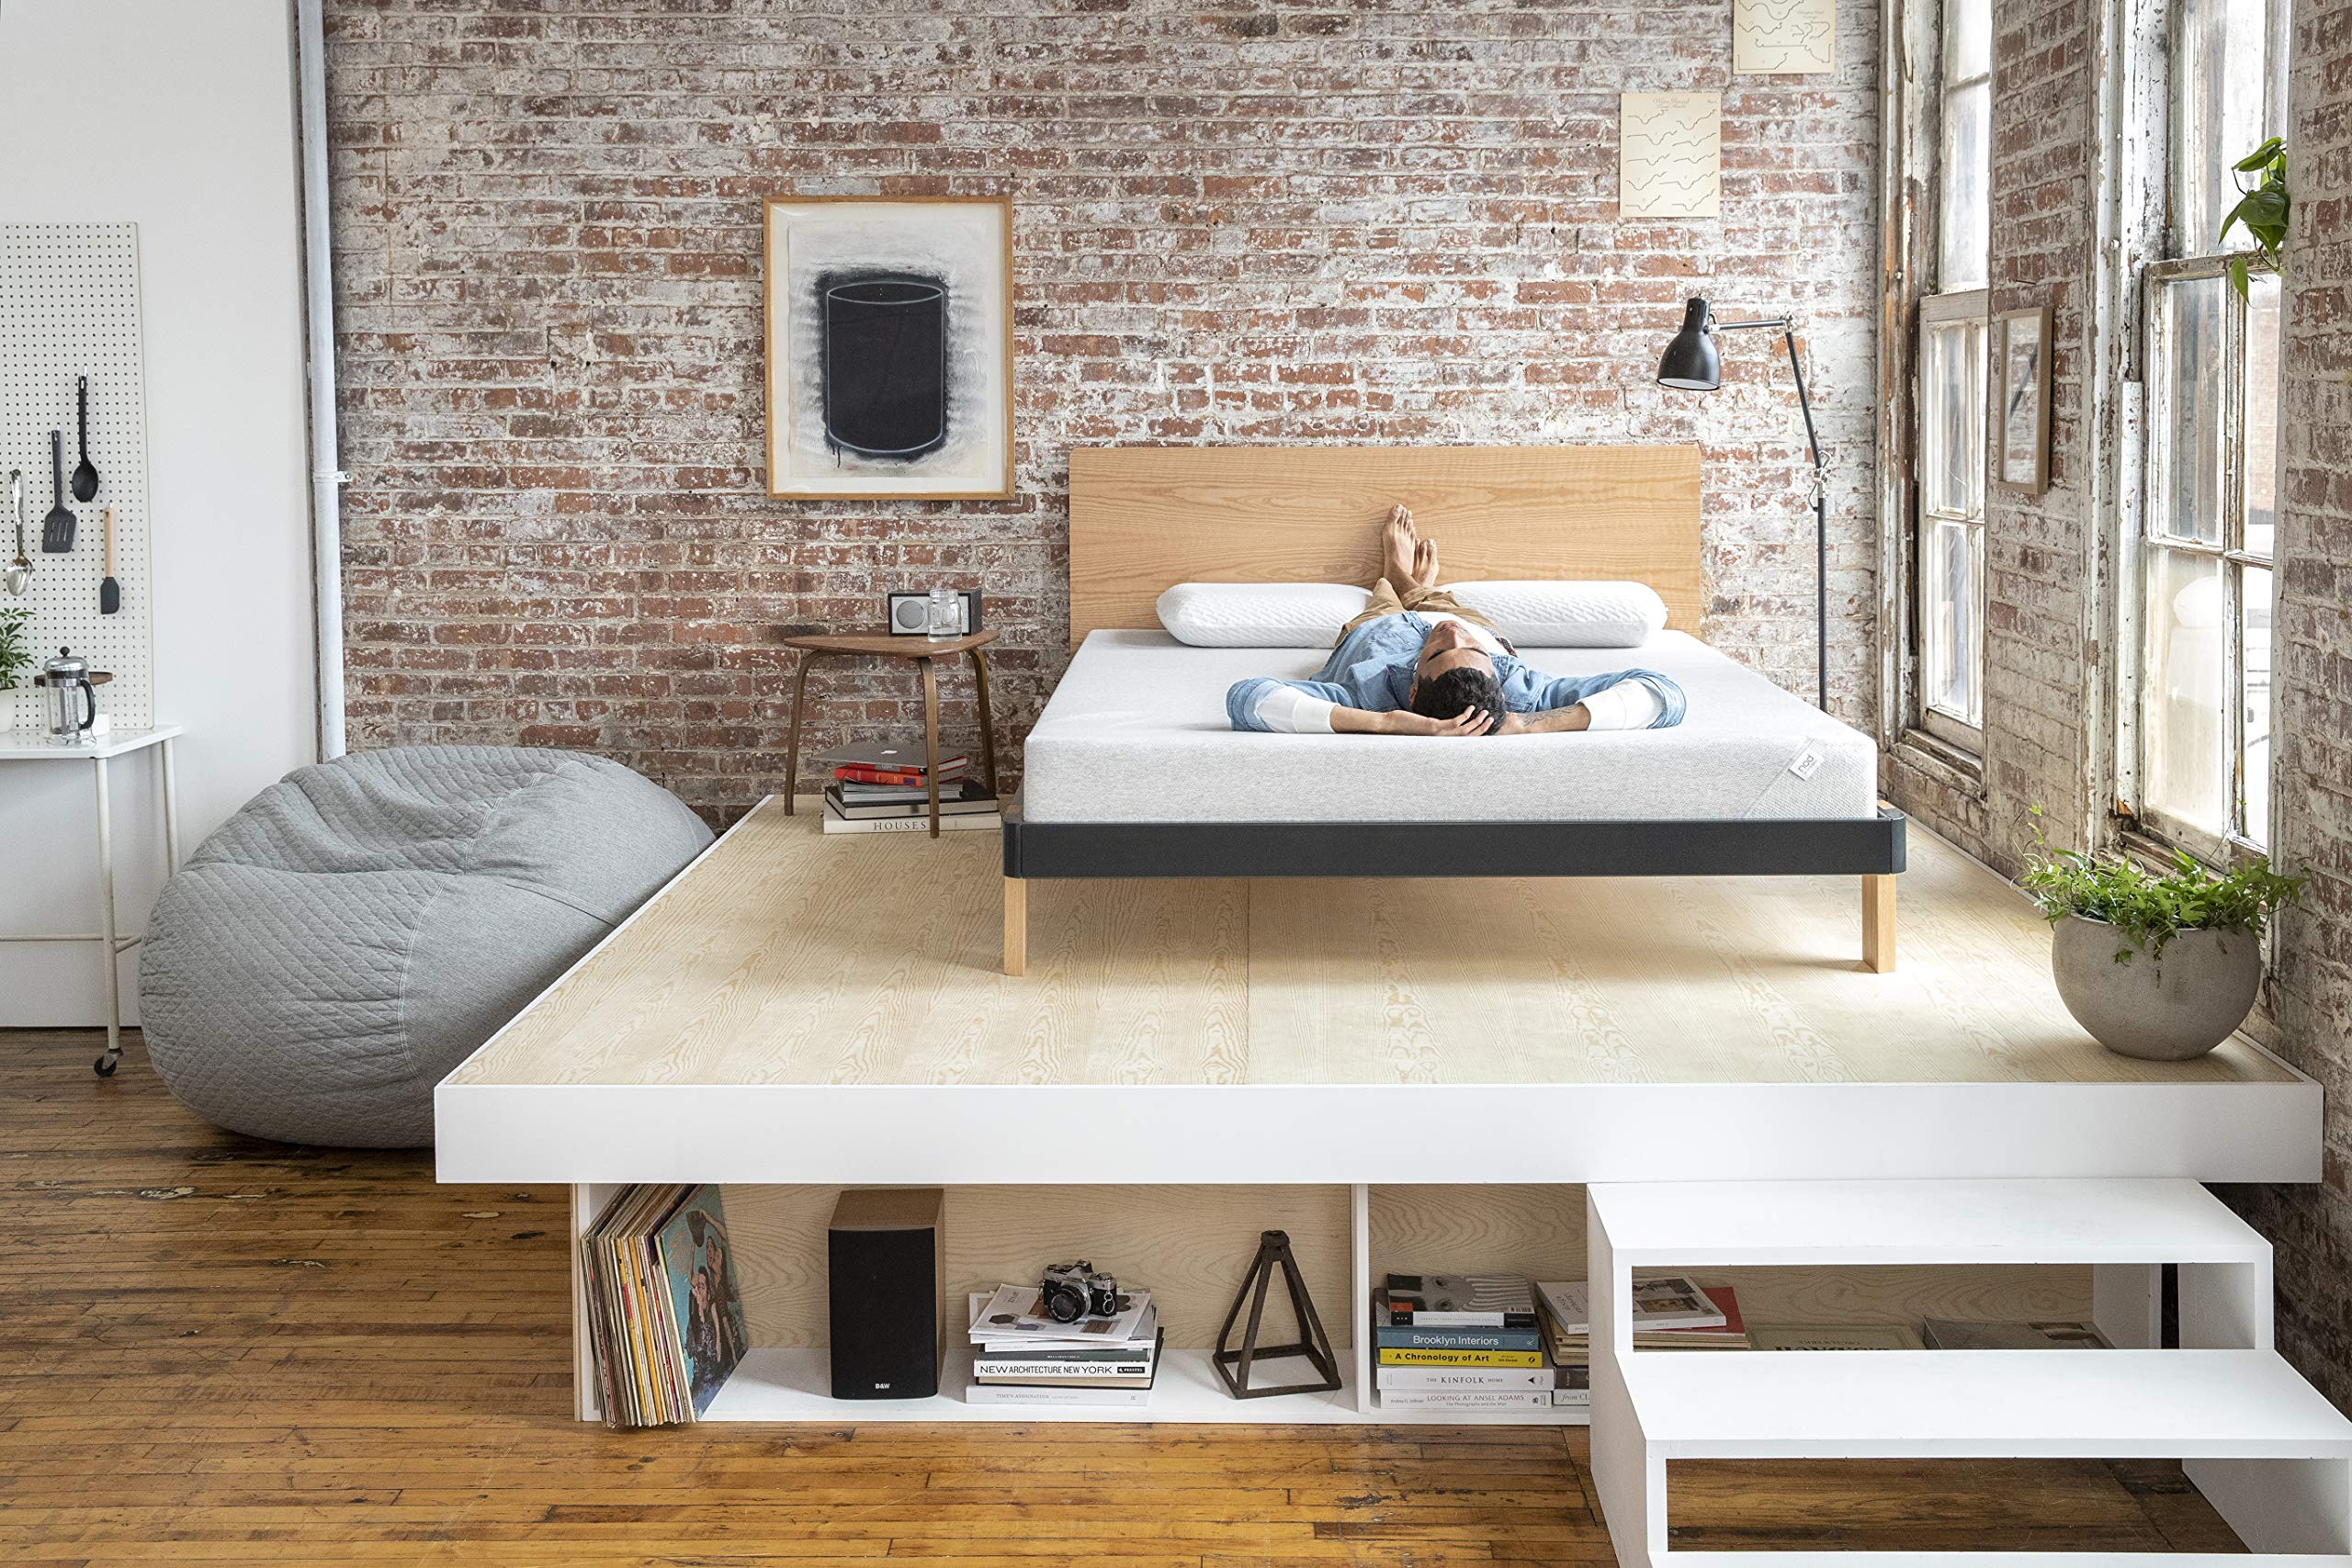 Nod by Tuft & Needle King Mattress, Amazon-Exclusive Bed in a Box, Responsive Foam, Sleeps Cooler & More Support Than Memory Foam, More Responsive Than Latex, CertiPUR-US, 10-Year Limited Warranty.